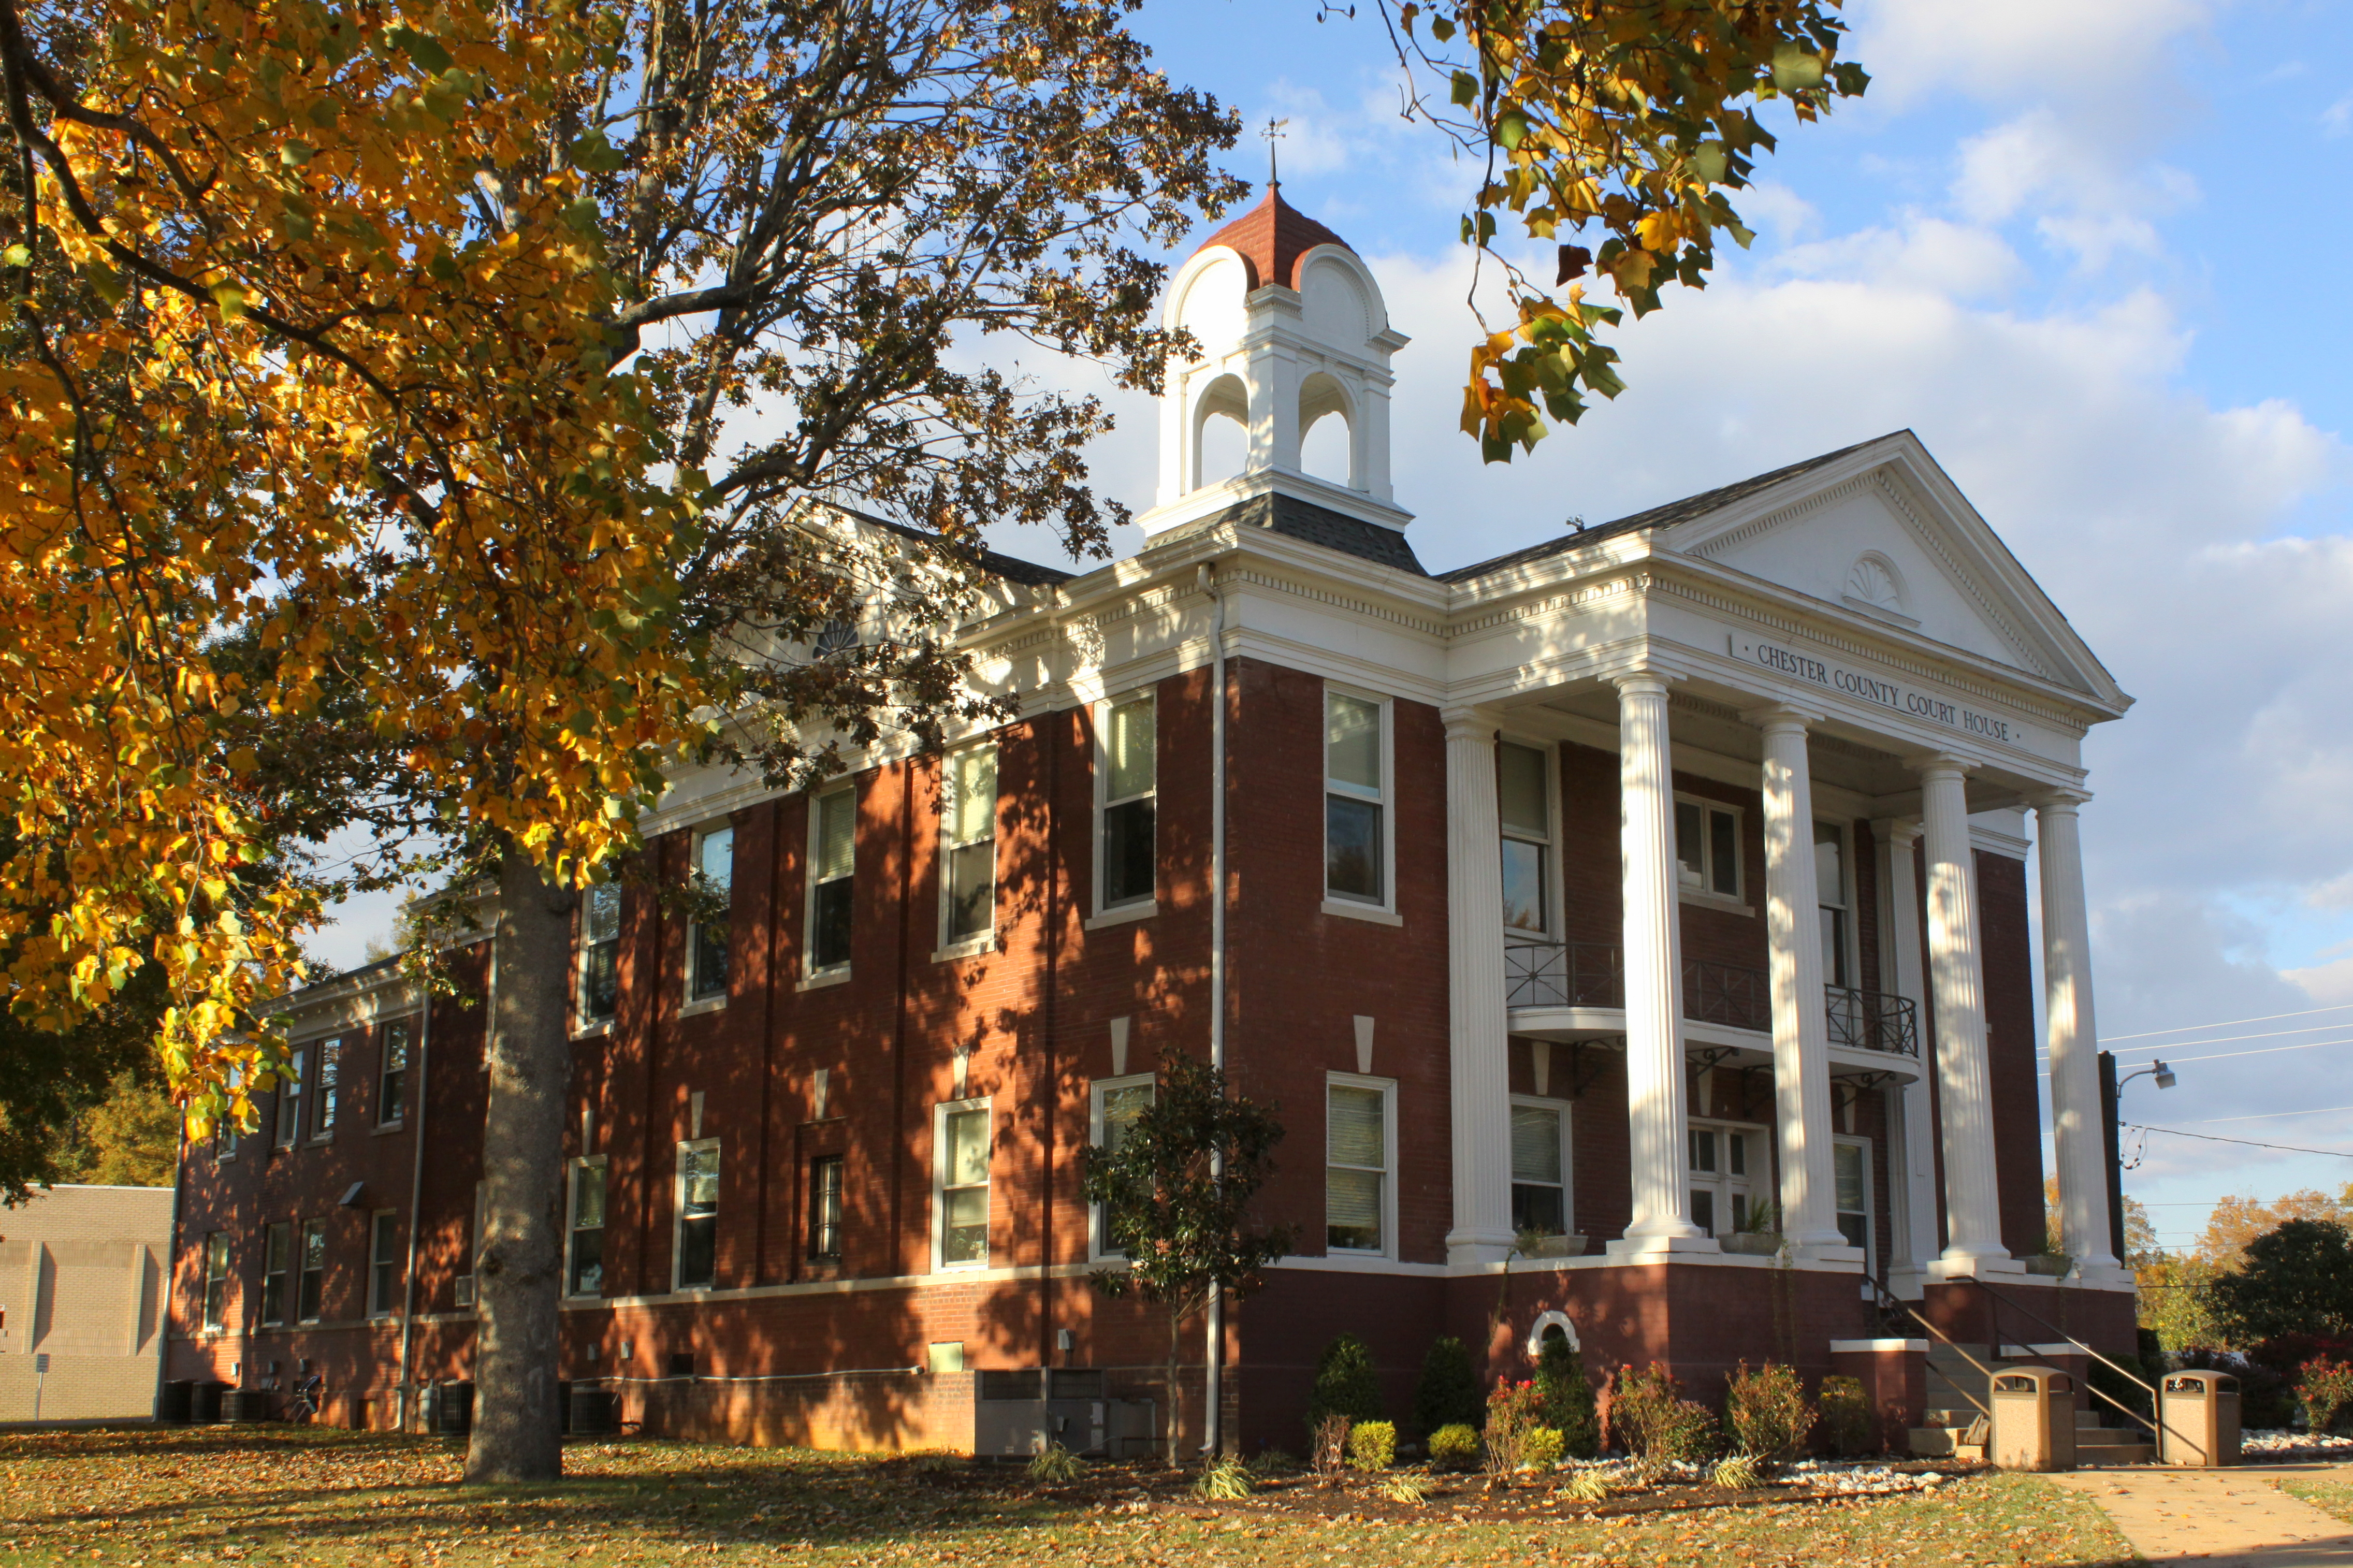 Tennessee haywood county stanton - Tn Tennessee Courthouse Henderson 1914 Chestercounty Countycourthouse Nrhp Classicalrevival Bmok Tn100